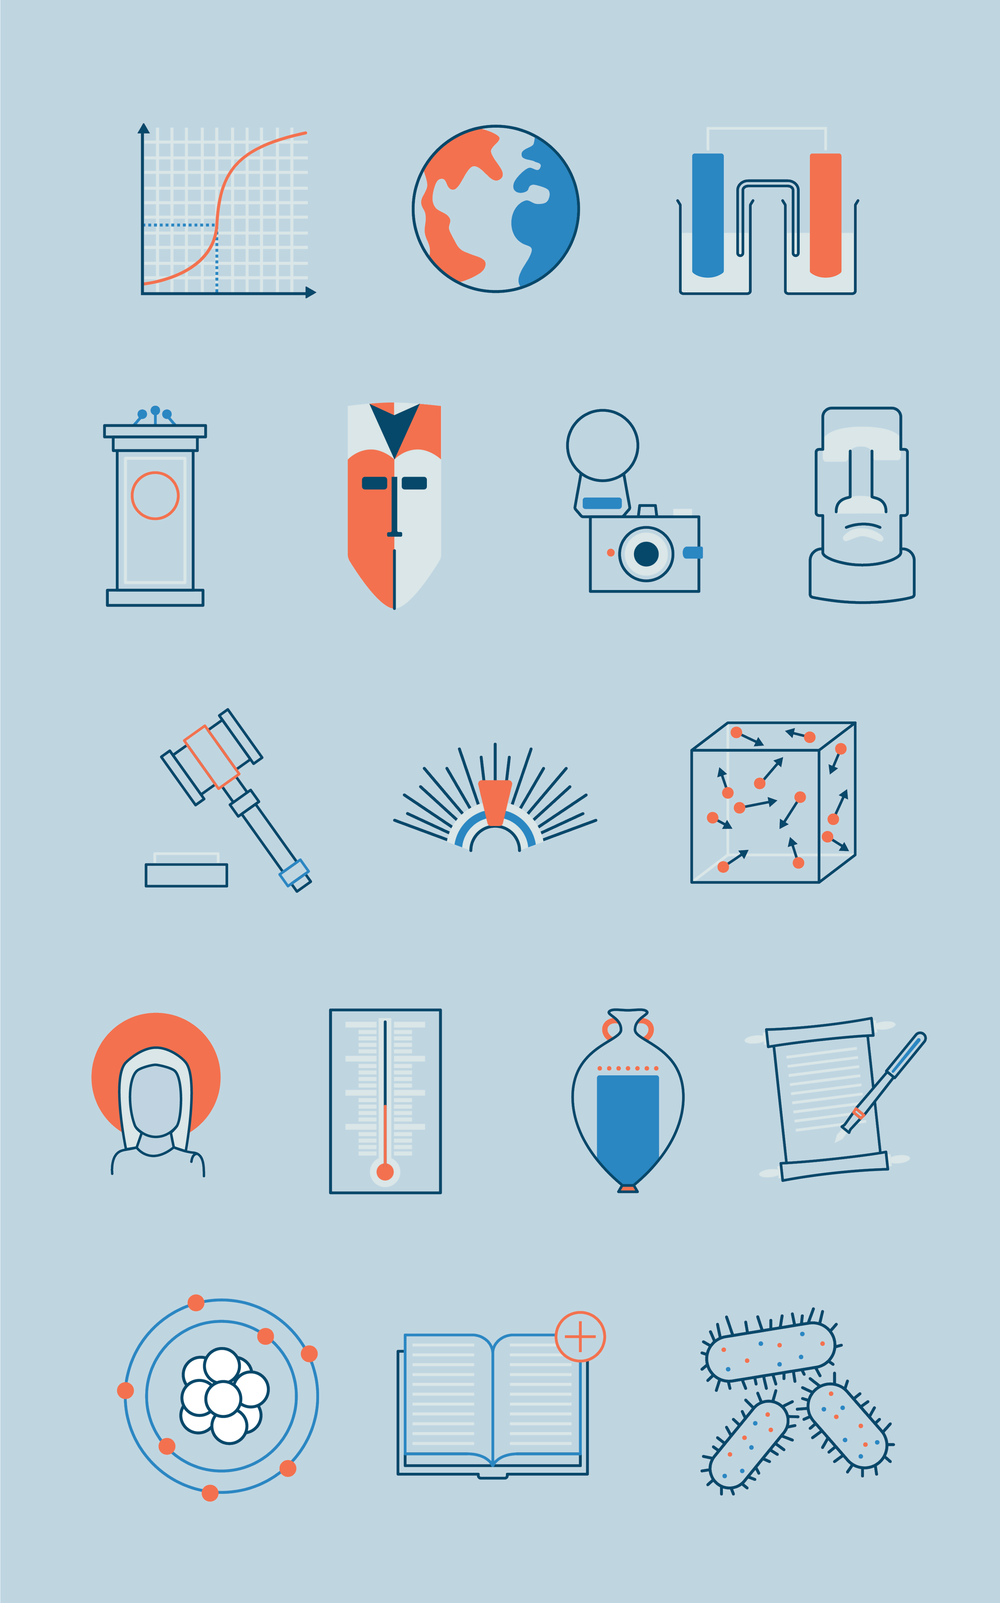 icons-illustration-elenapotter.jpg